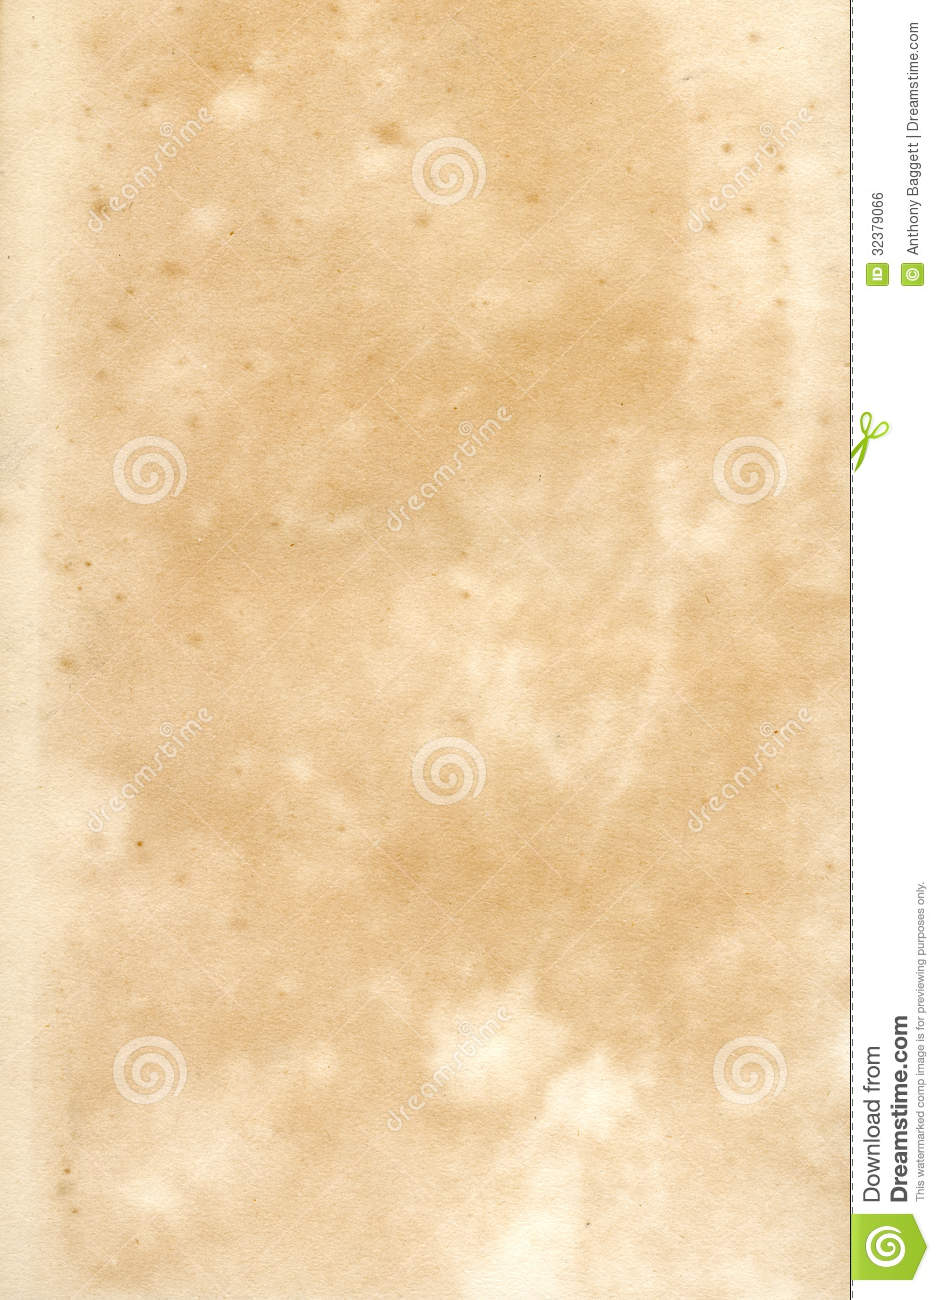 Old vintage early19th century old textured paper document background.